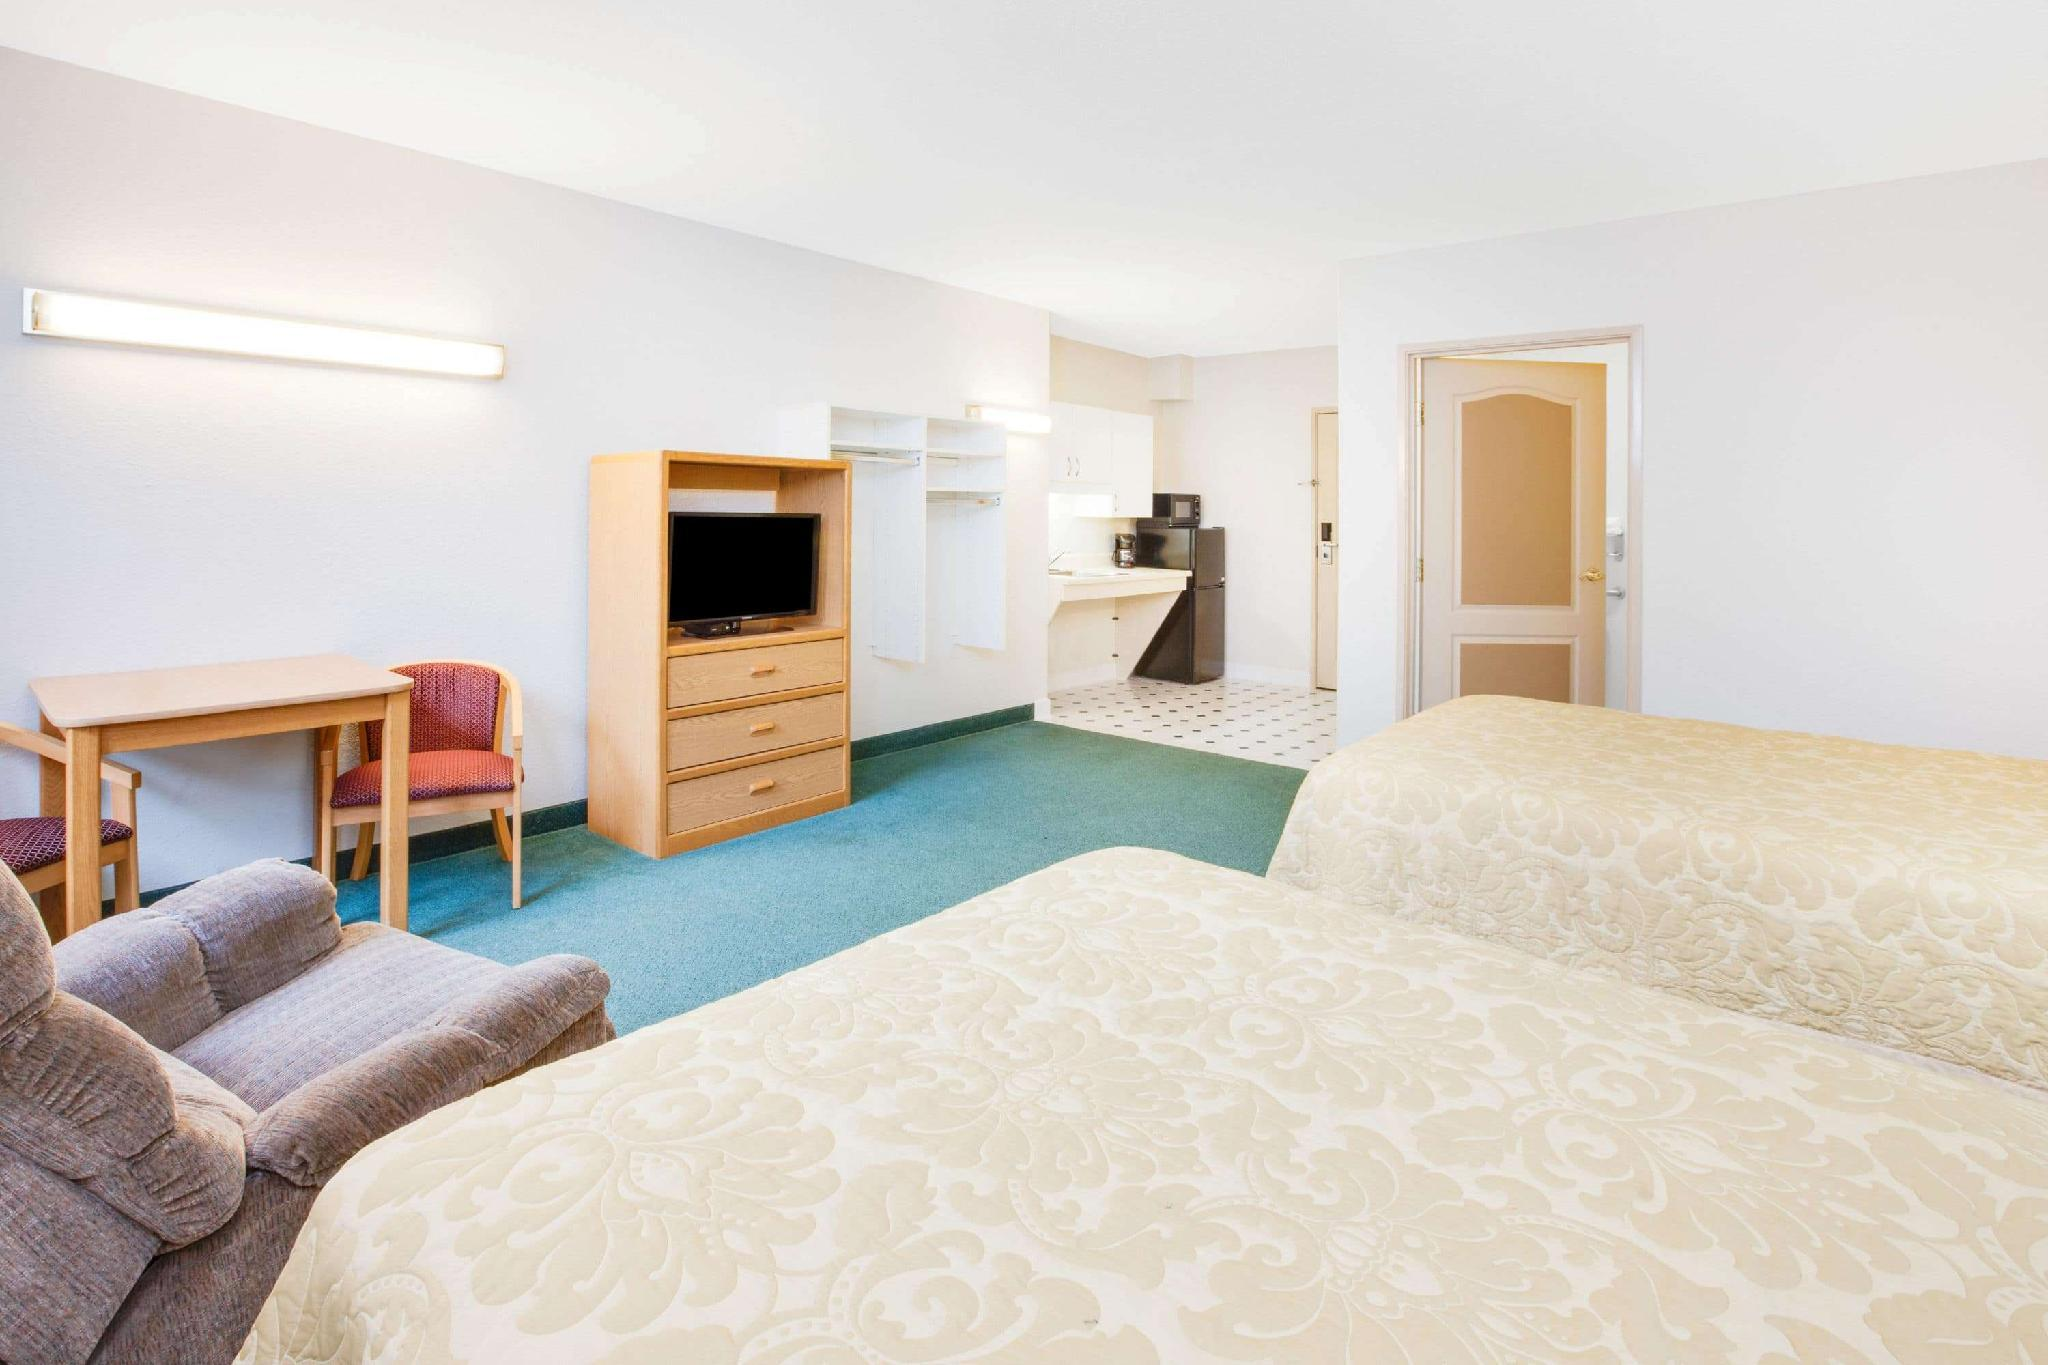 2 Double Beds Accessible Room Non-Smoking